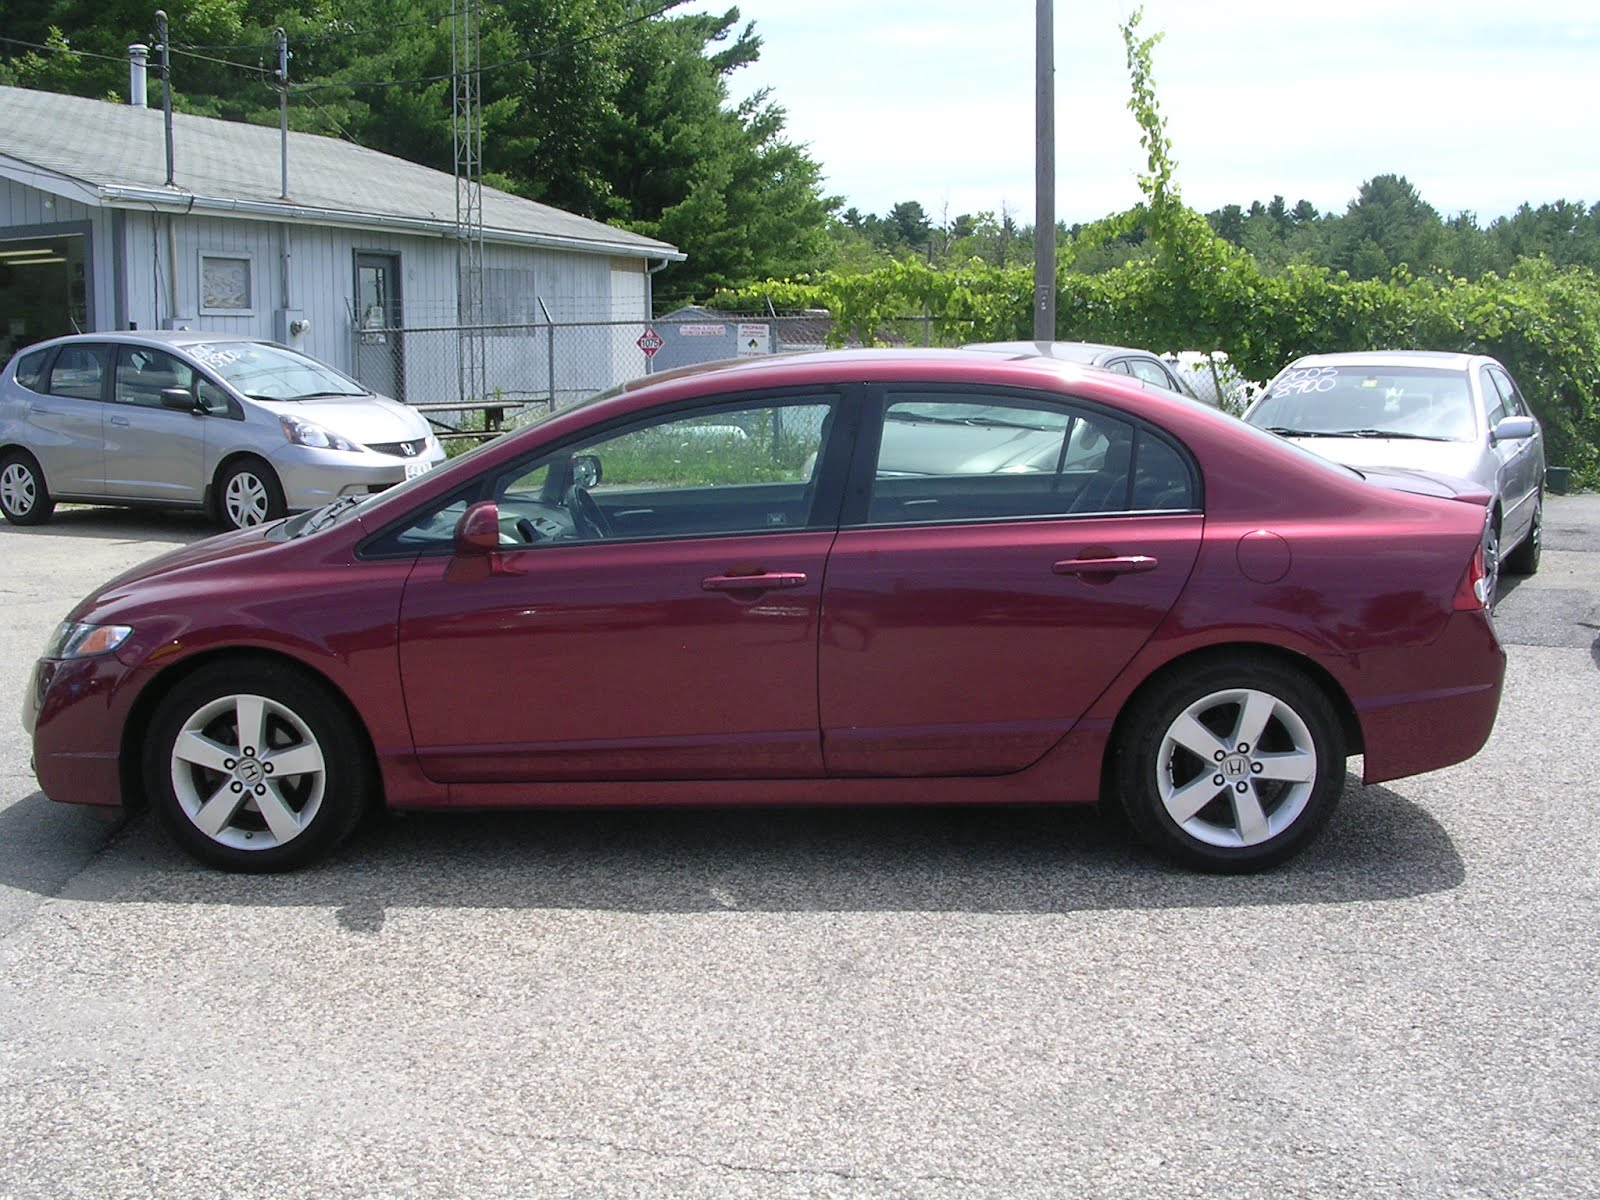 EARTHY CAR OF THE WEEK: 2010 Red Honda Civic LX S